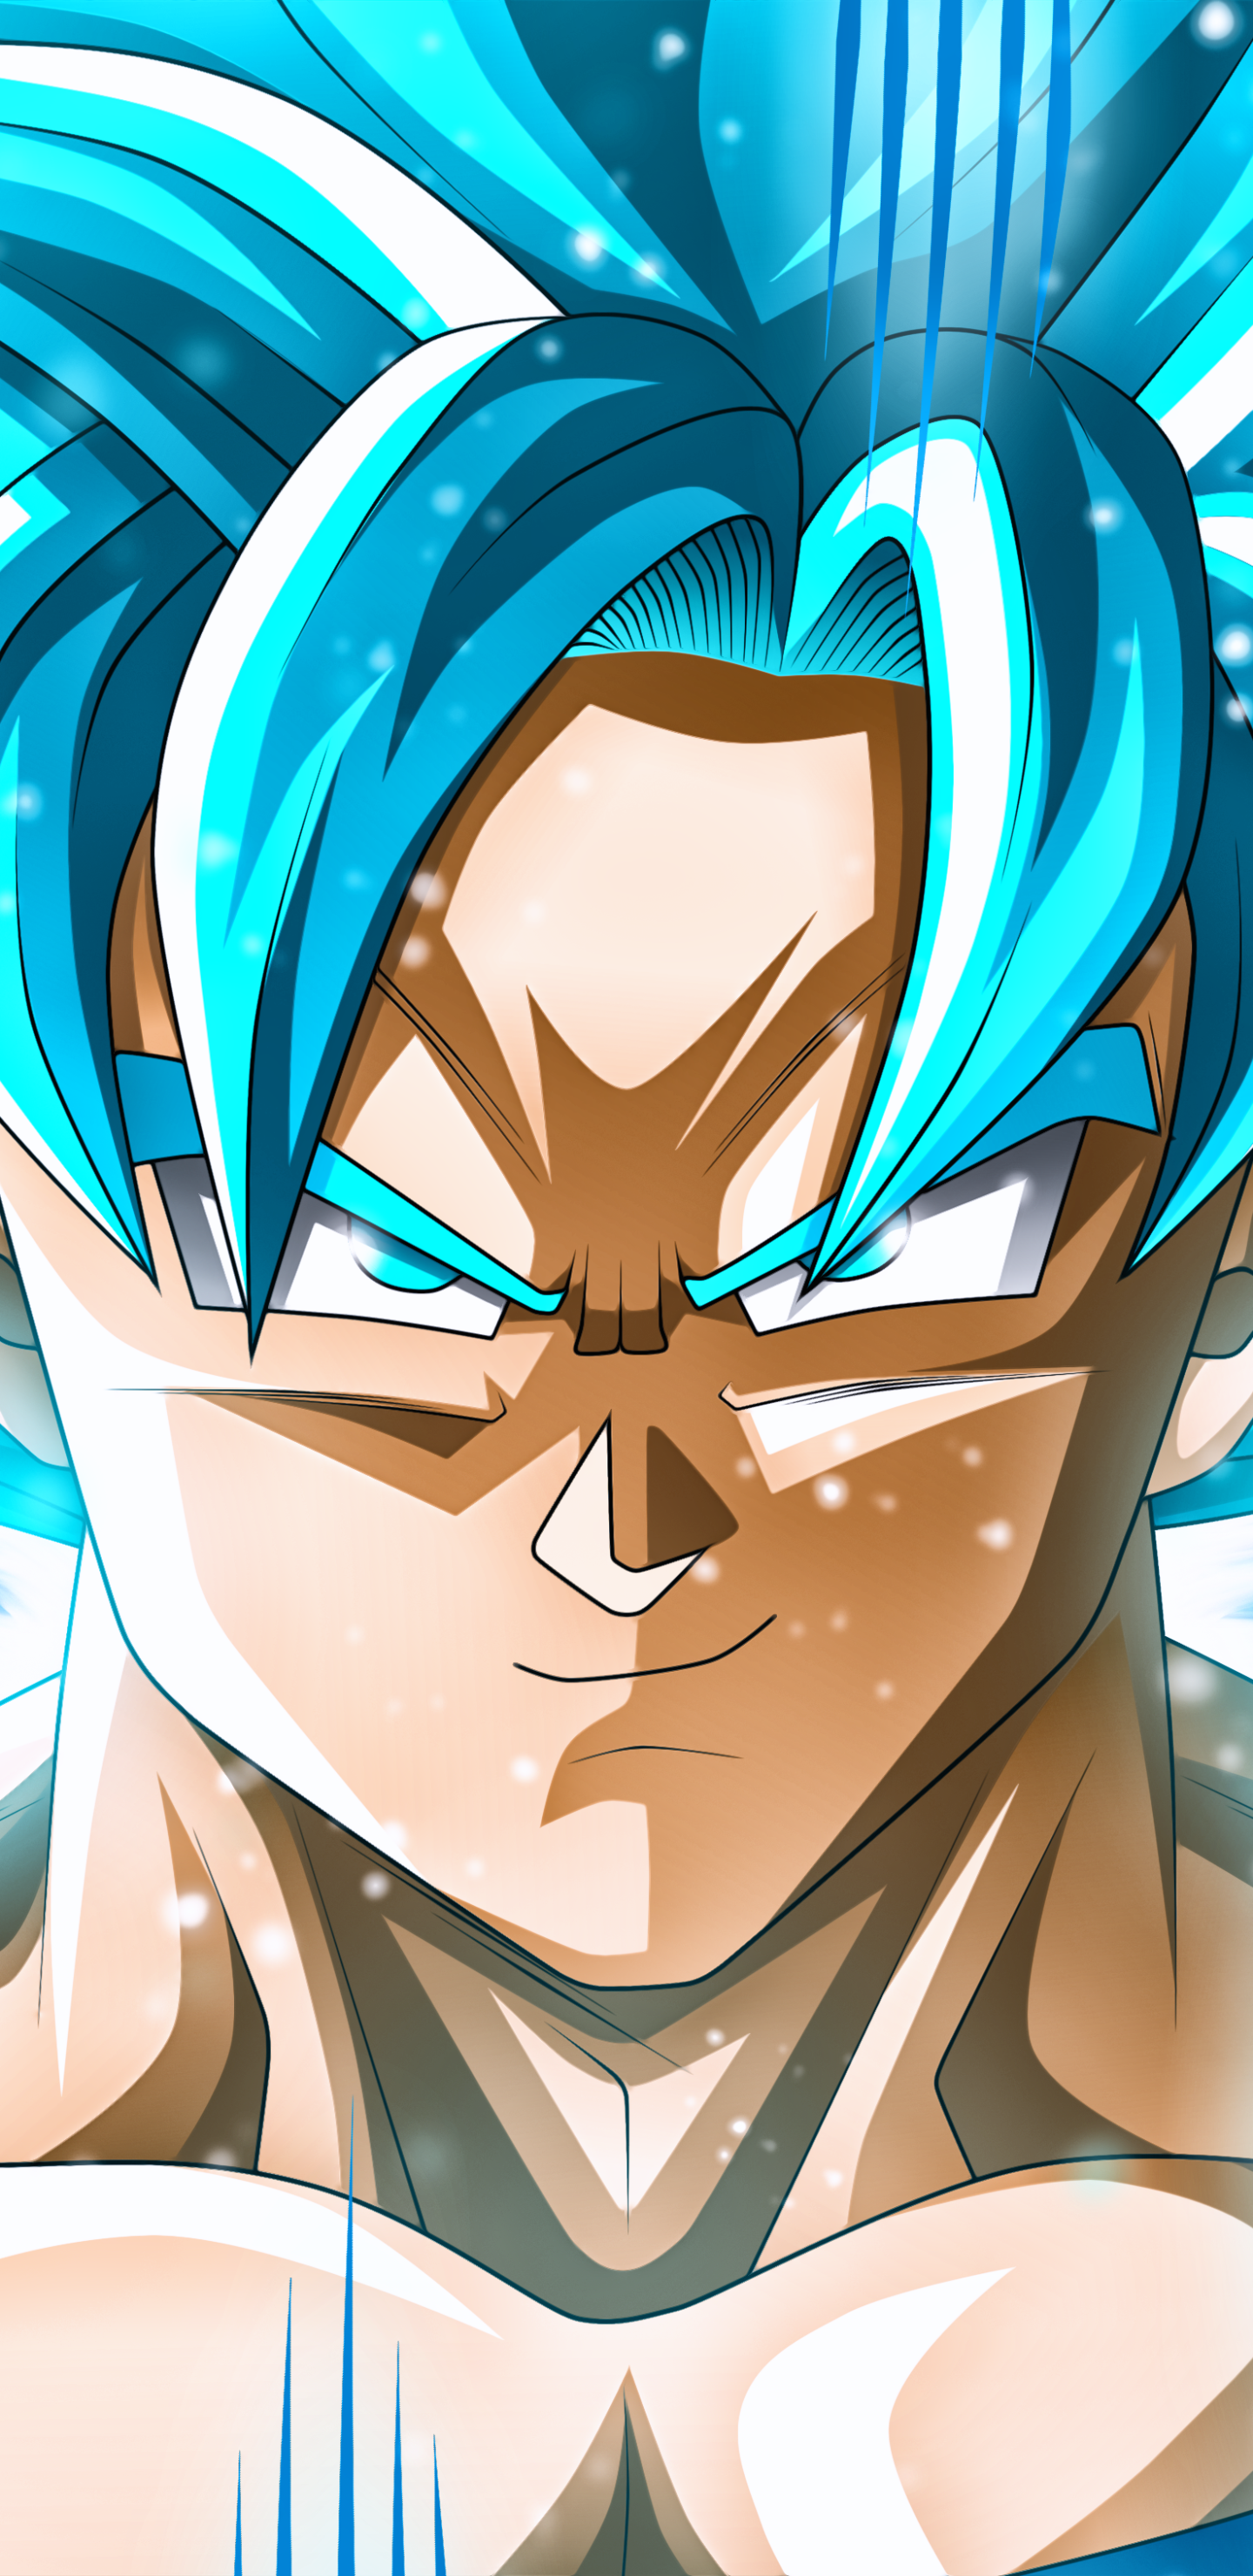 Download This Wallpaper Anime Dragon Ball Super 1440x2960 For All Your Phones And Tablets Anime Dragon Ball Super Anime Dragon Ball Dragon Ball Super Goku